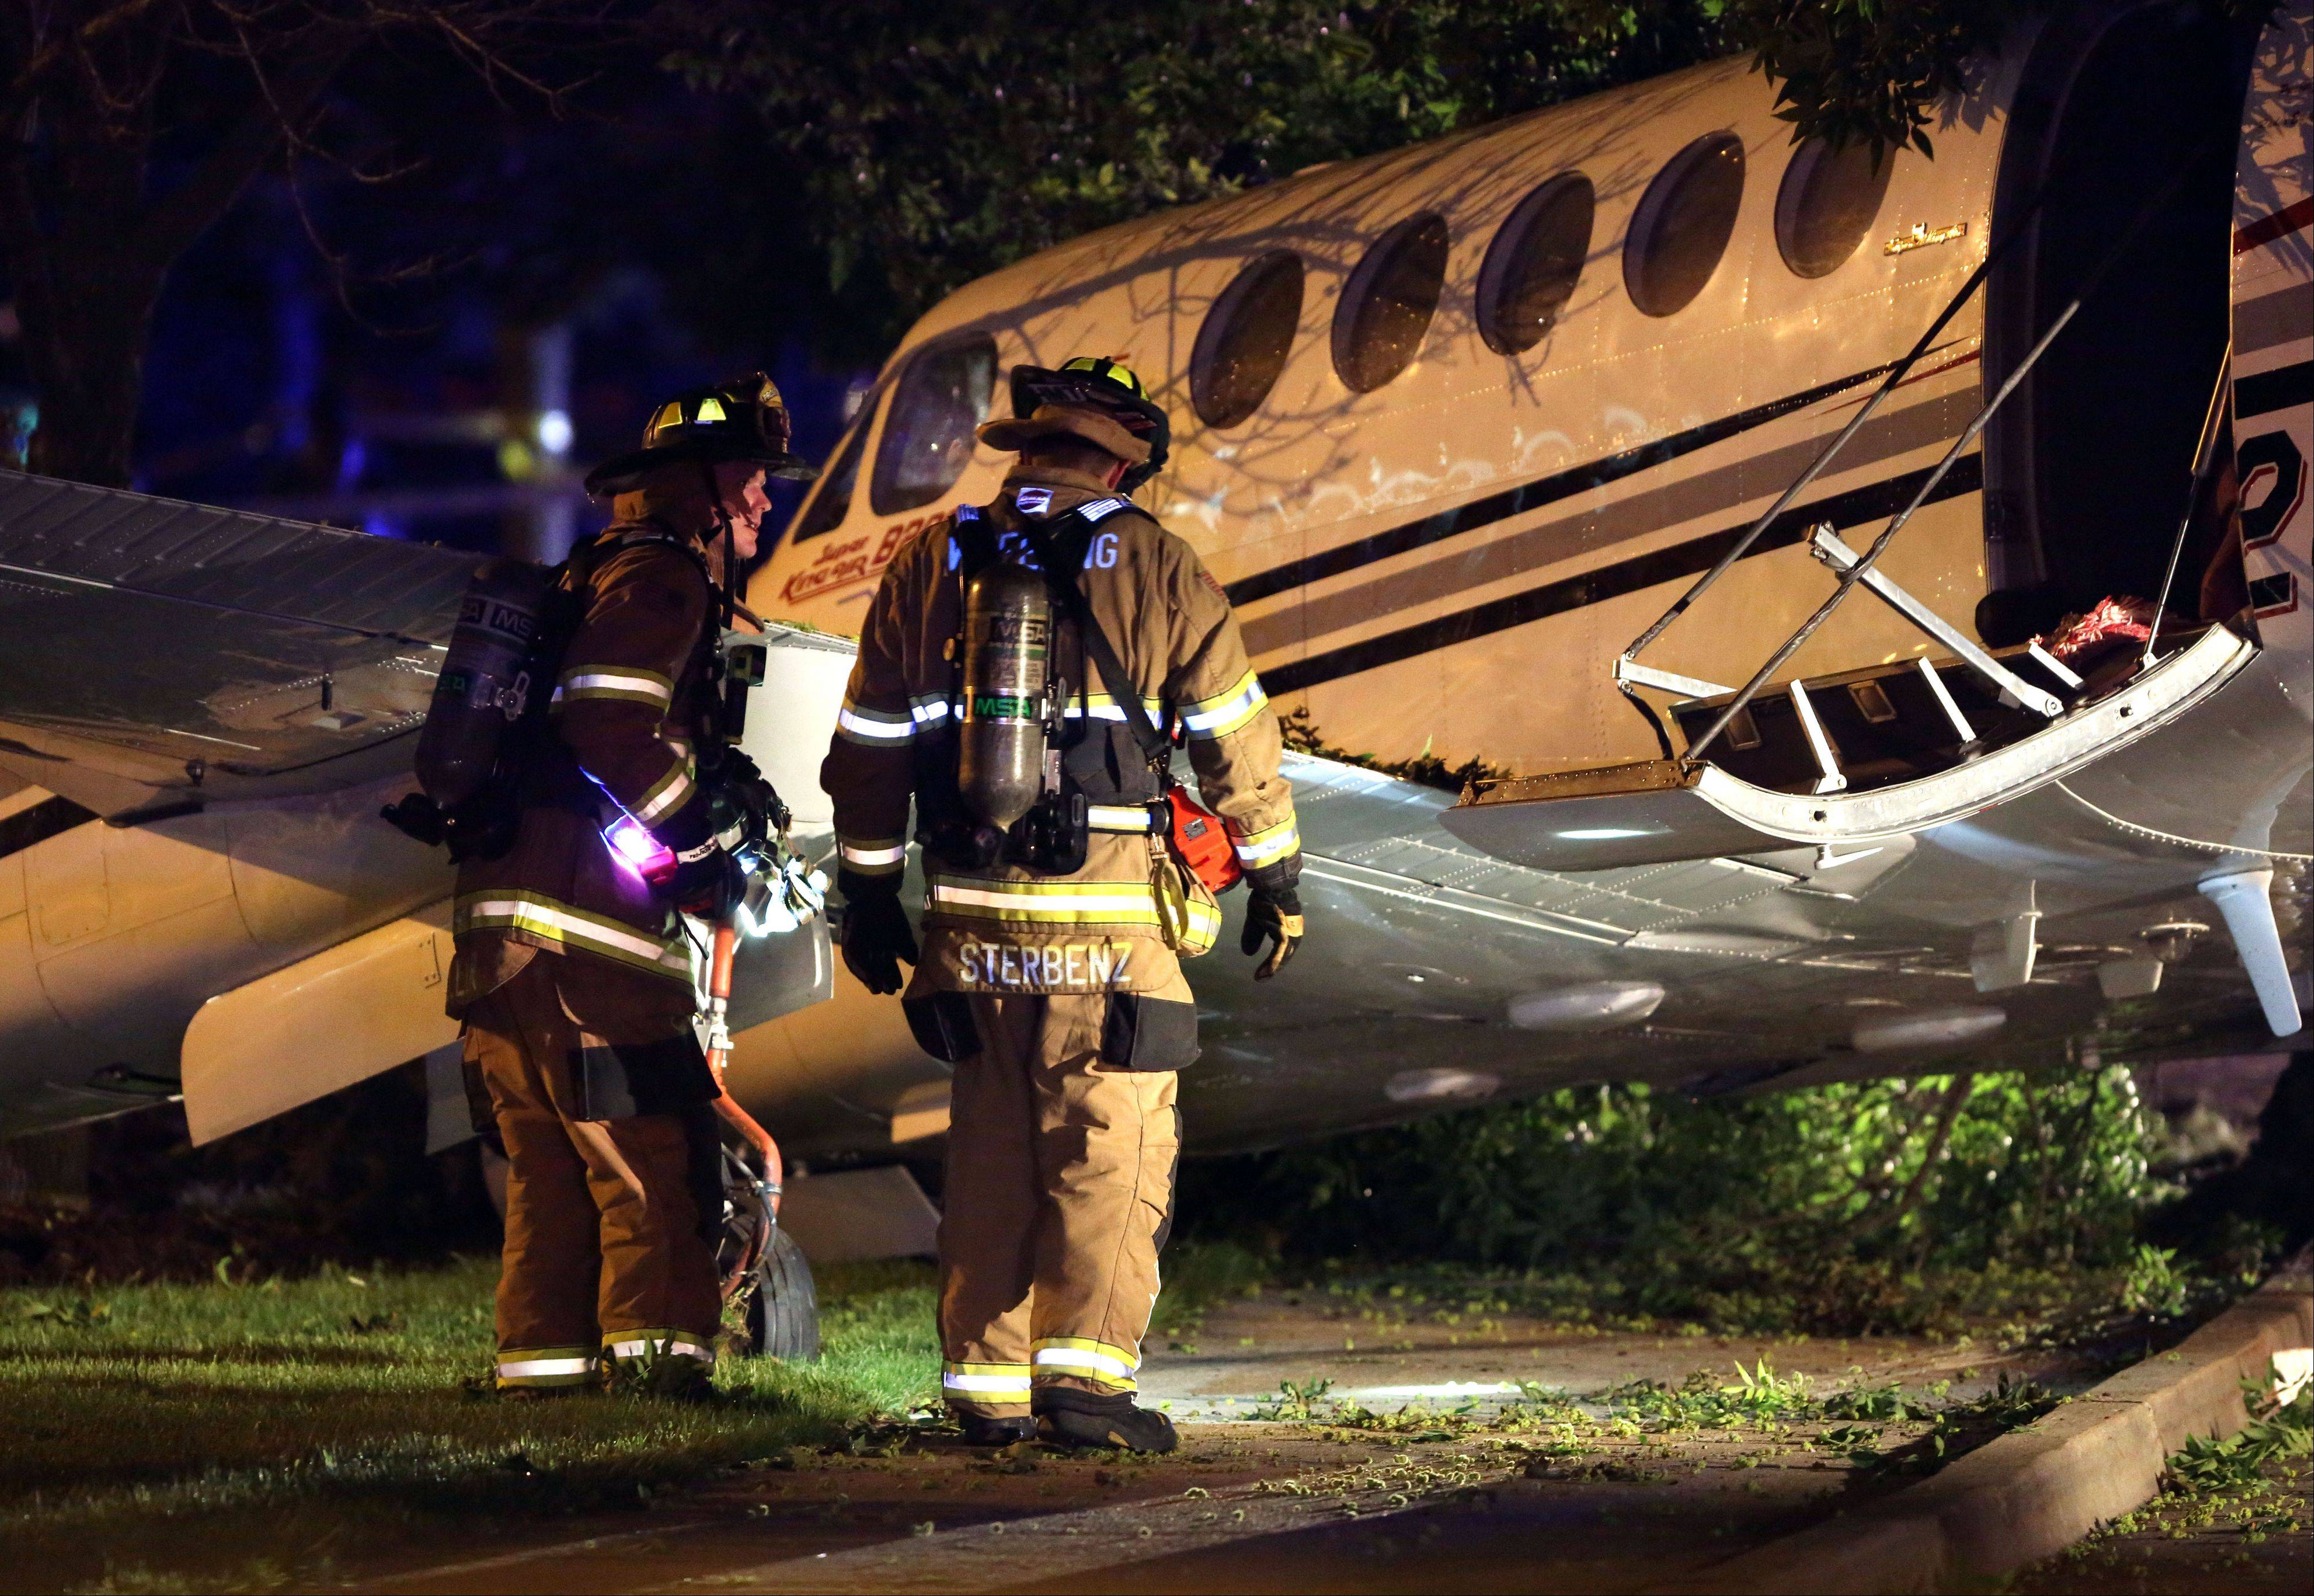 Firefighters investigate a plane that crashed Tuesday on Wolf Road in Wheeling near the Foxboro Apartments.